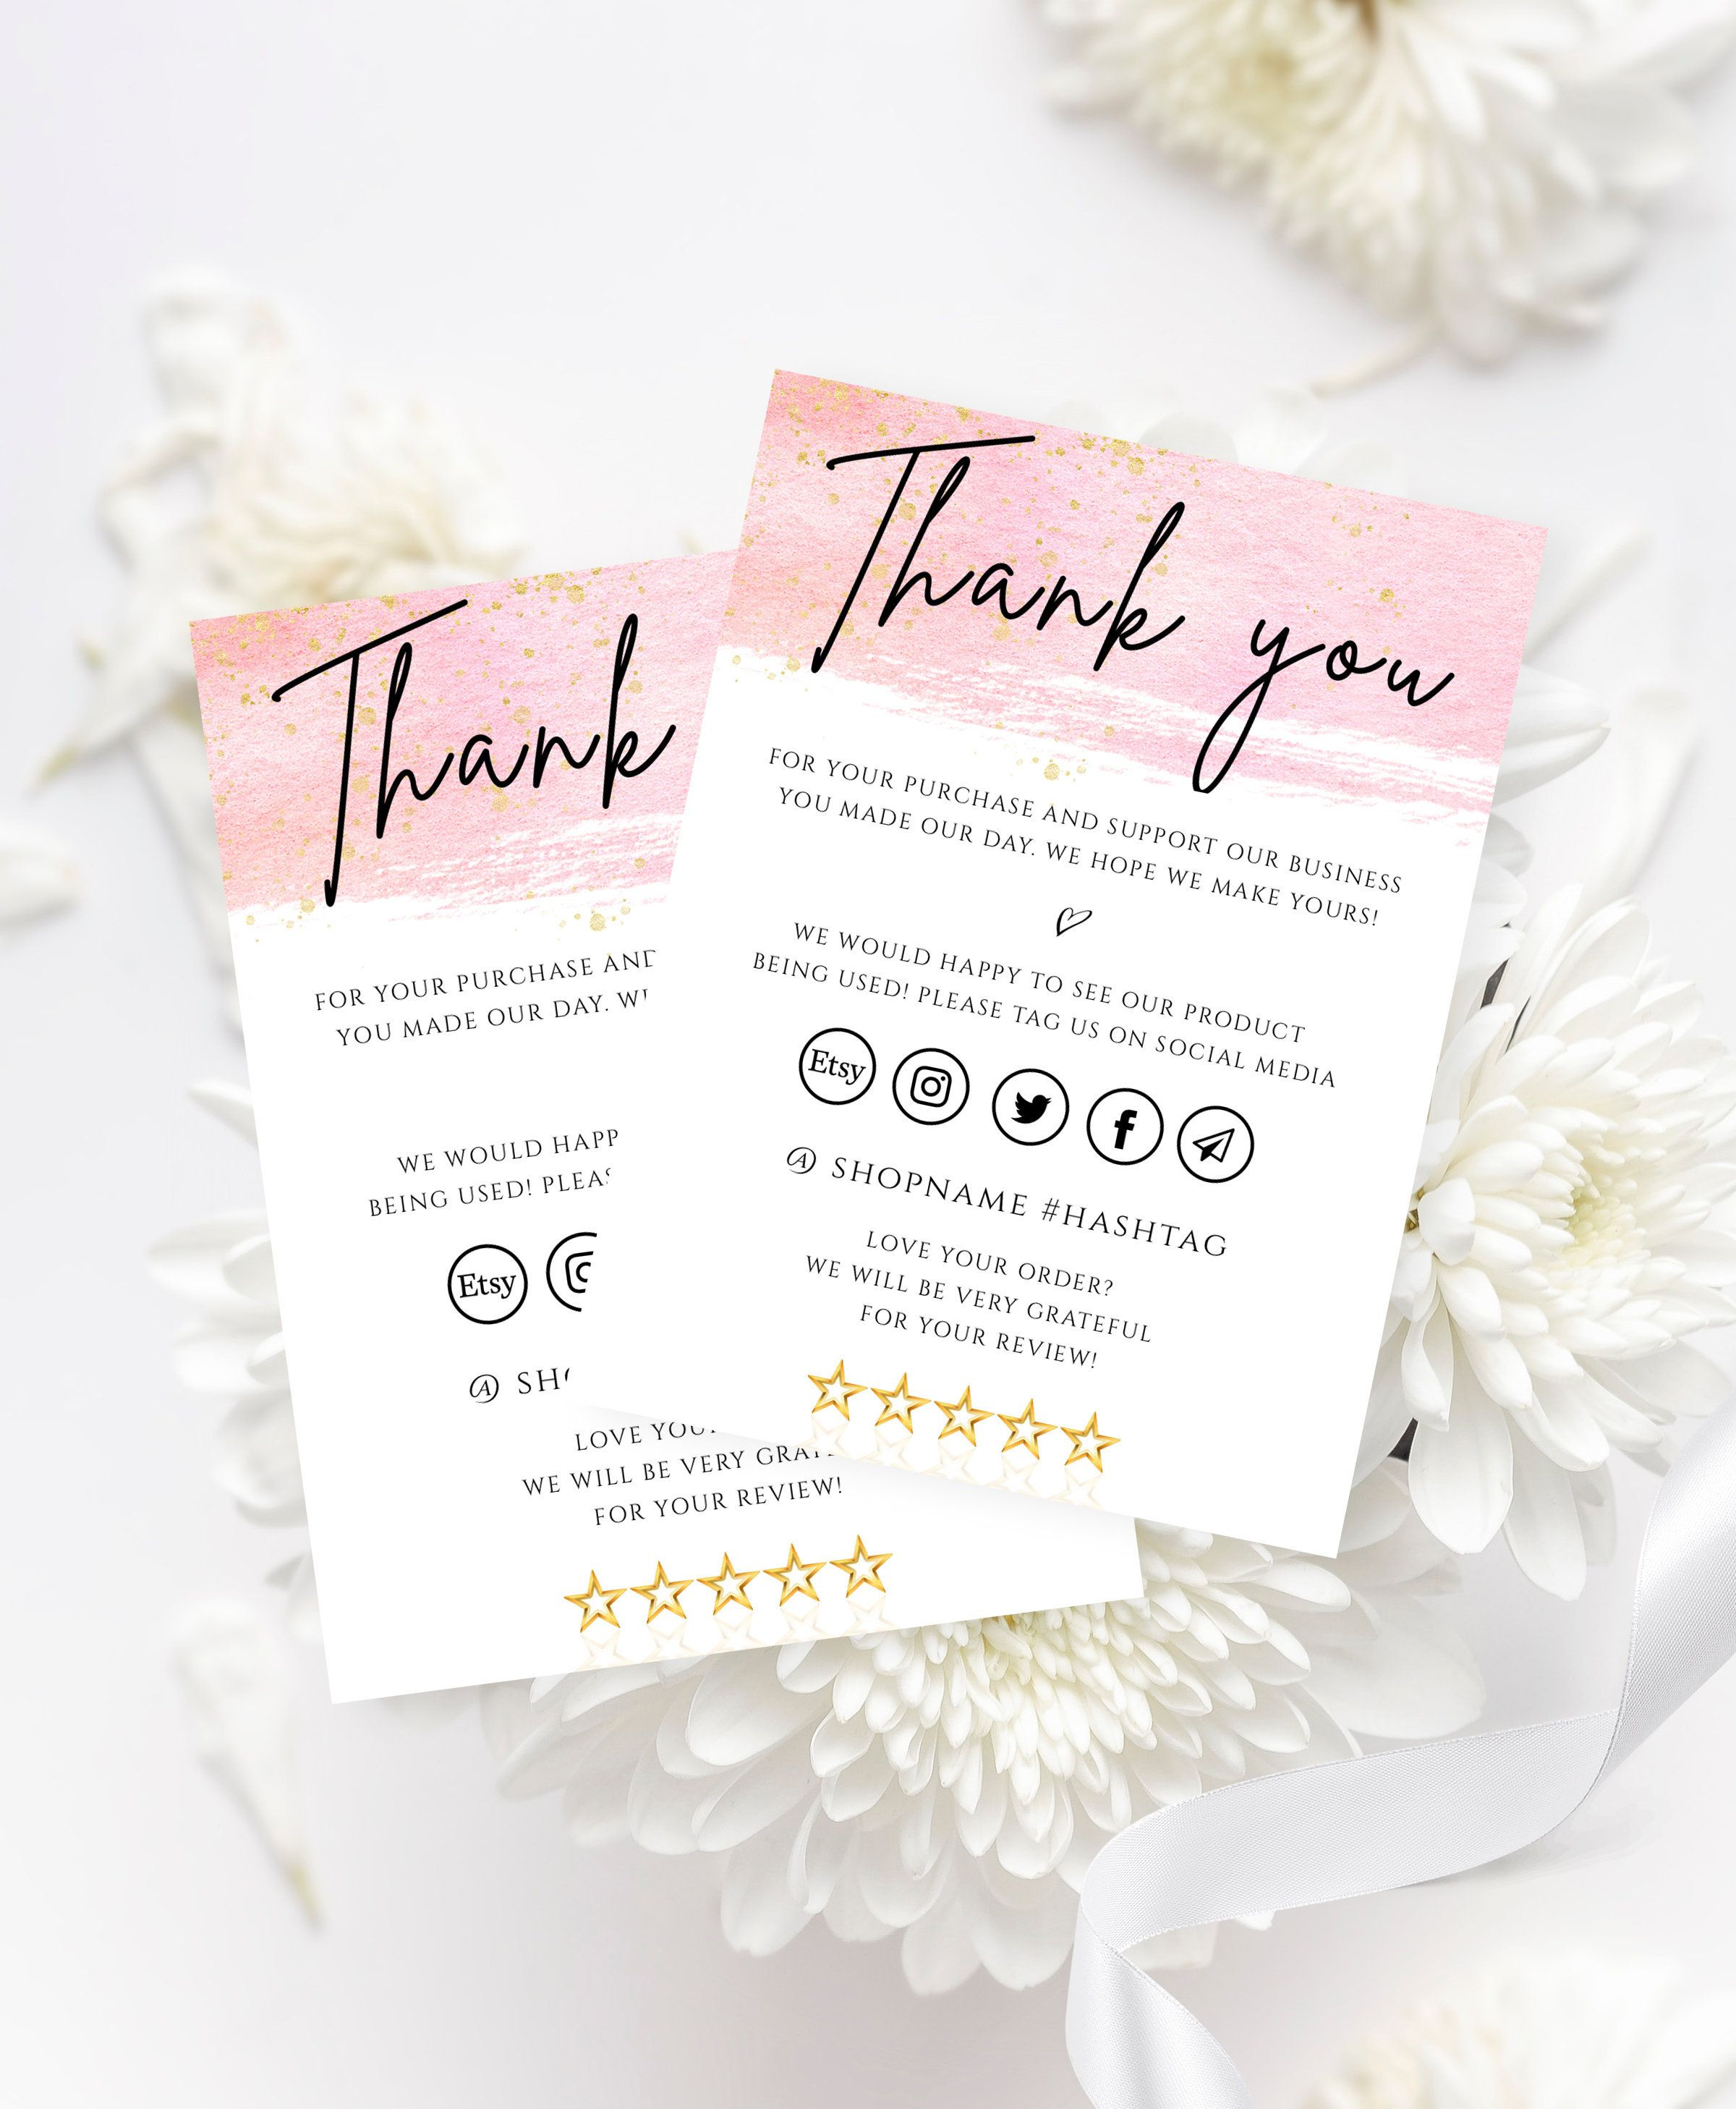 Rose Gold Thank You Cards Business Templates Editable Social Etsy Thank You Card Design Business Thank You Cards Order Business Cards